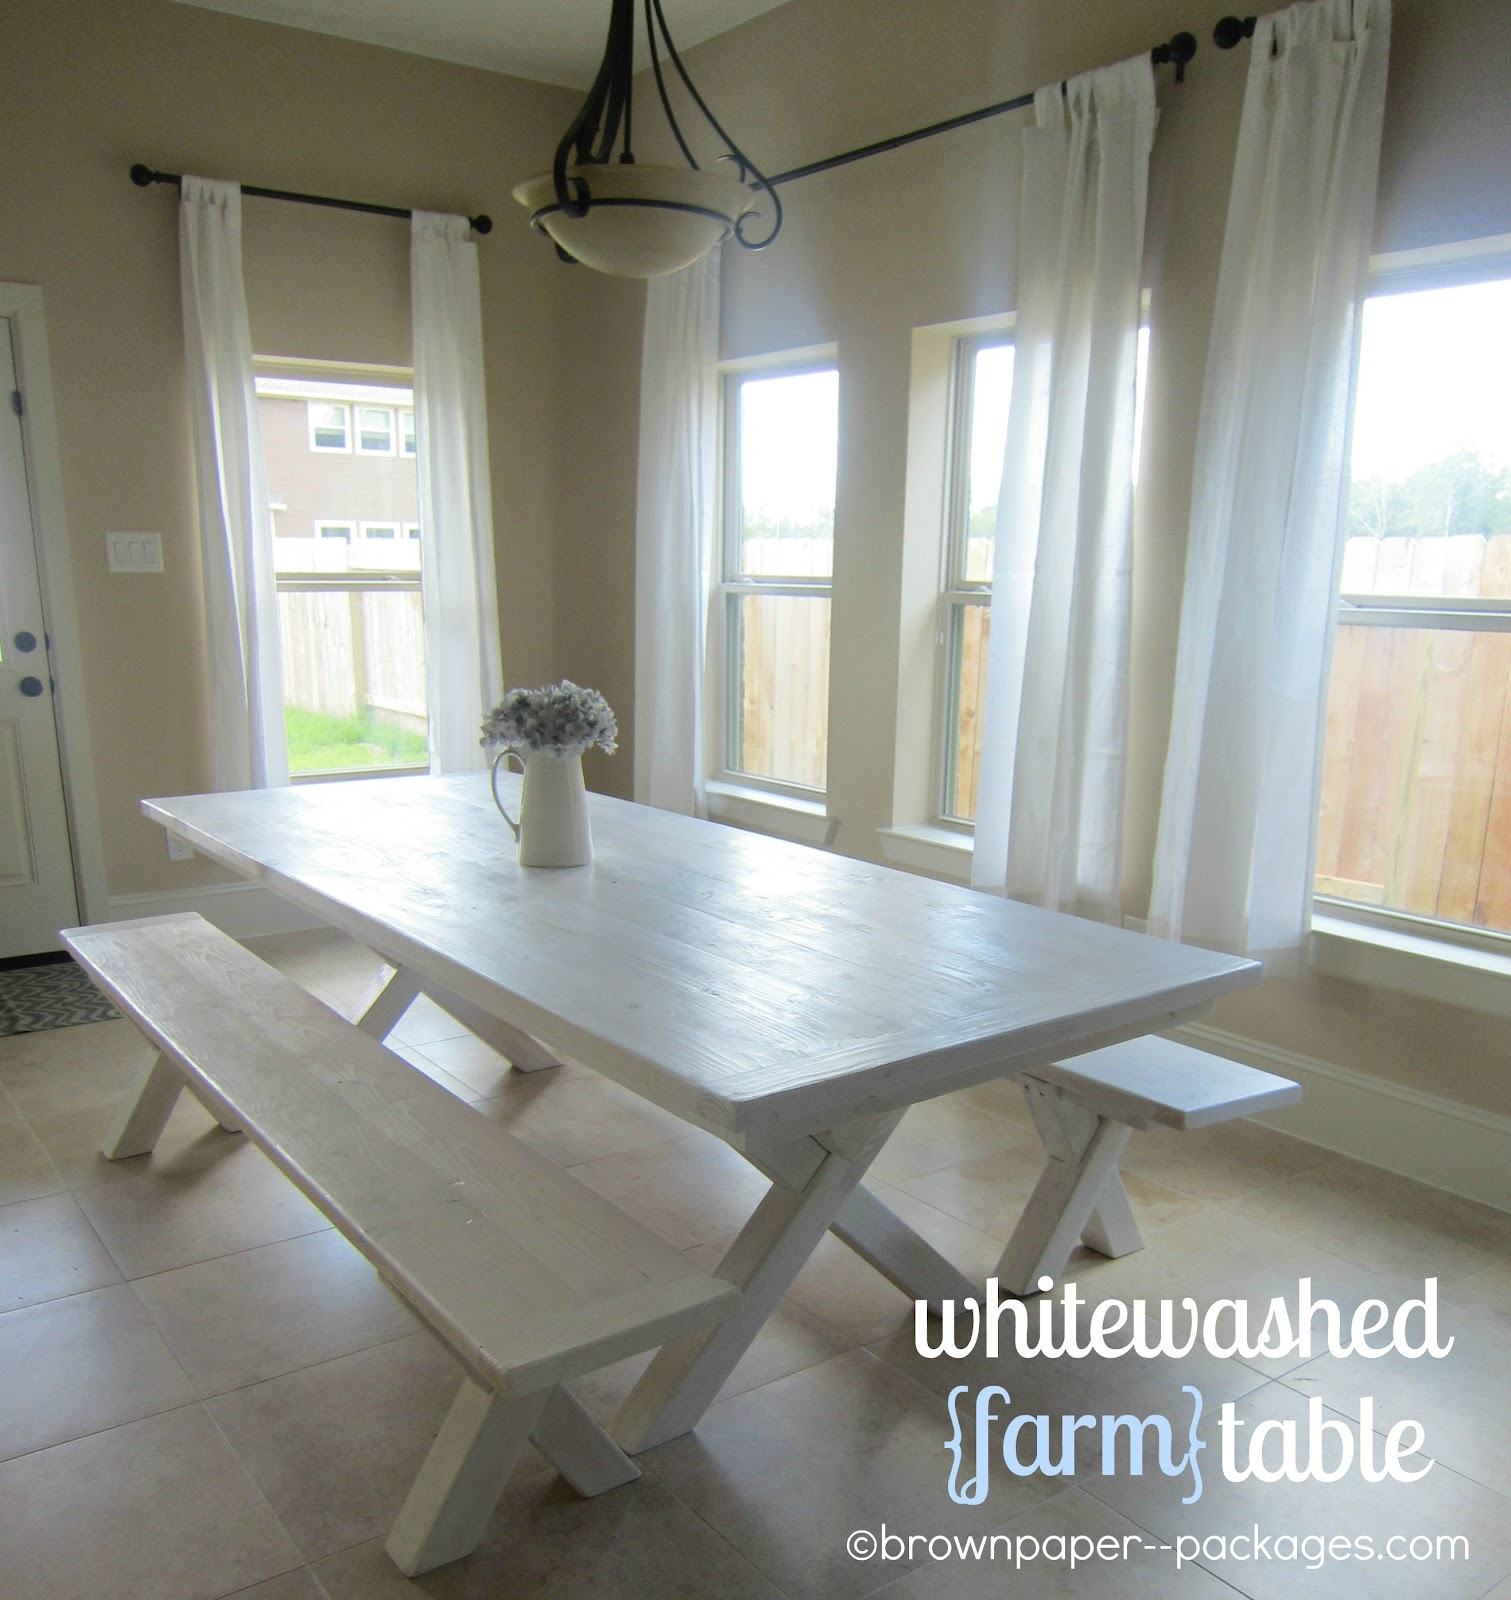 brown paper packages whitewashed farm table